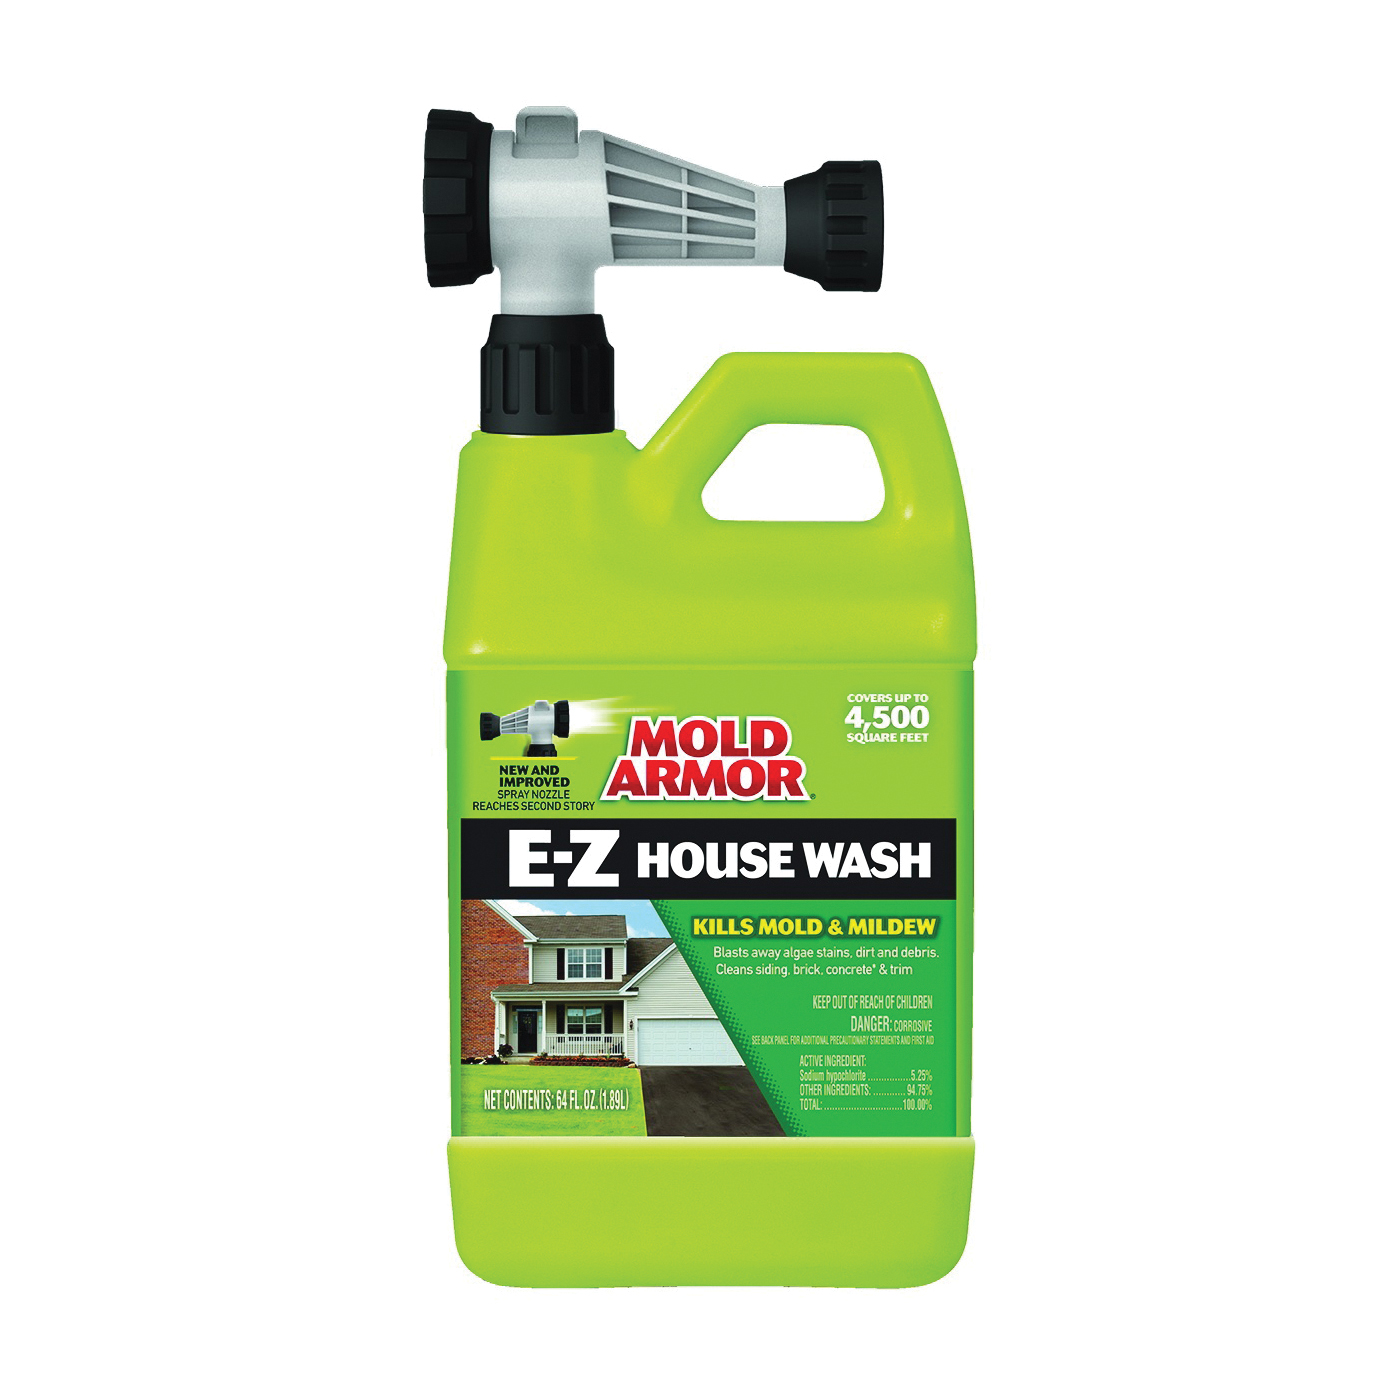 Picture of Mold Armor FG51164 House Wash Hose End, Liquid, Yellow, 64 oz, Can